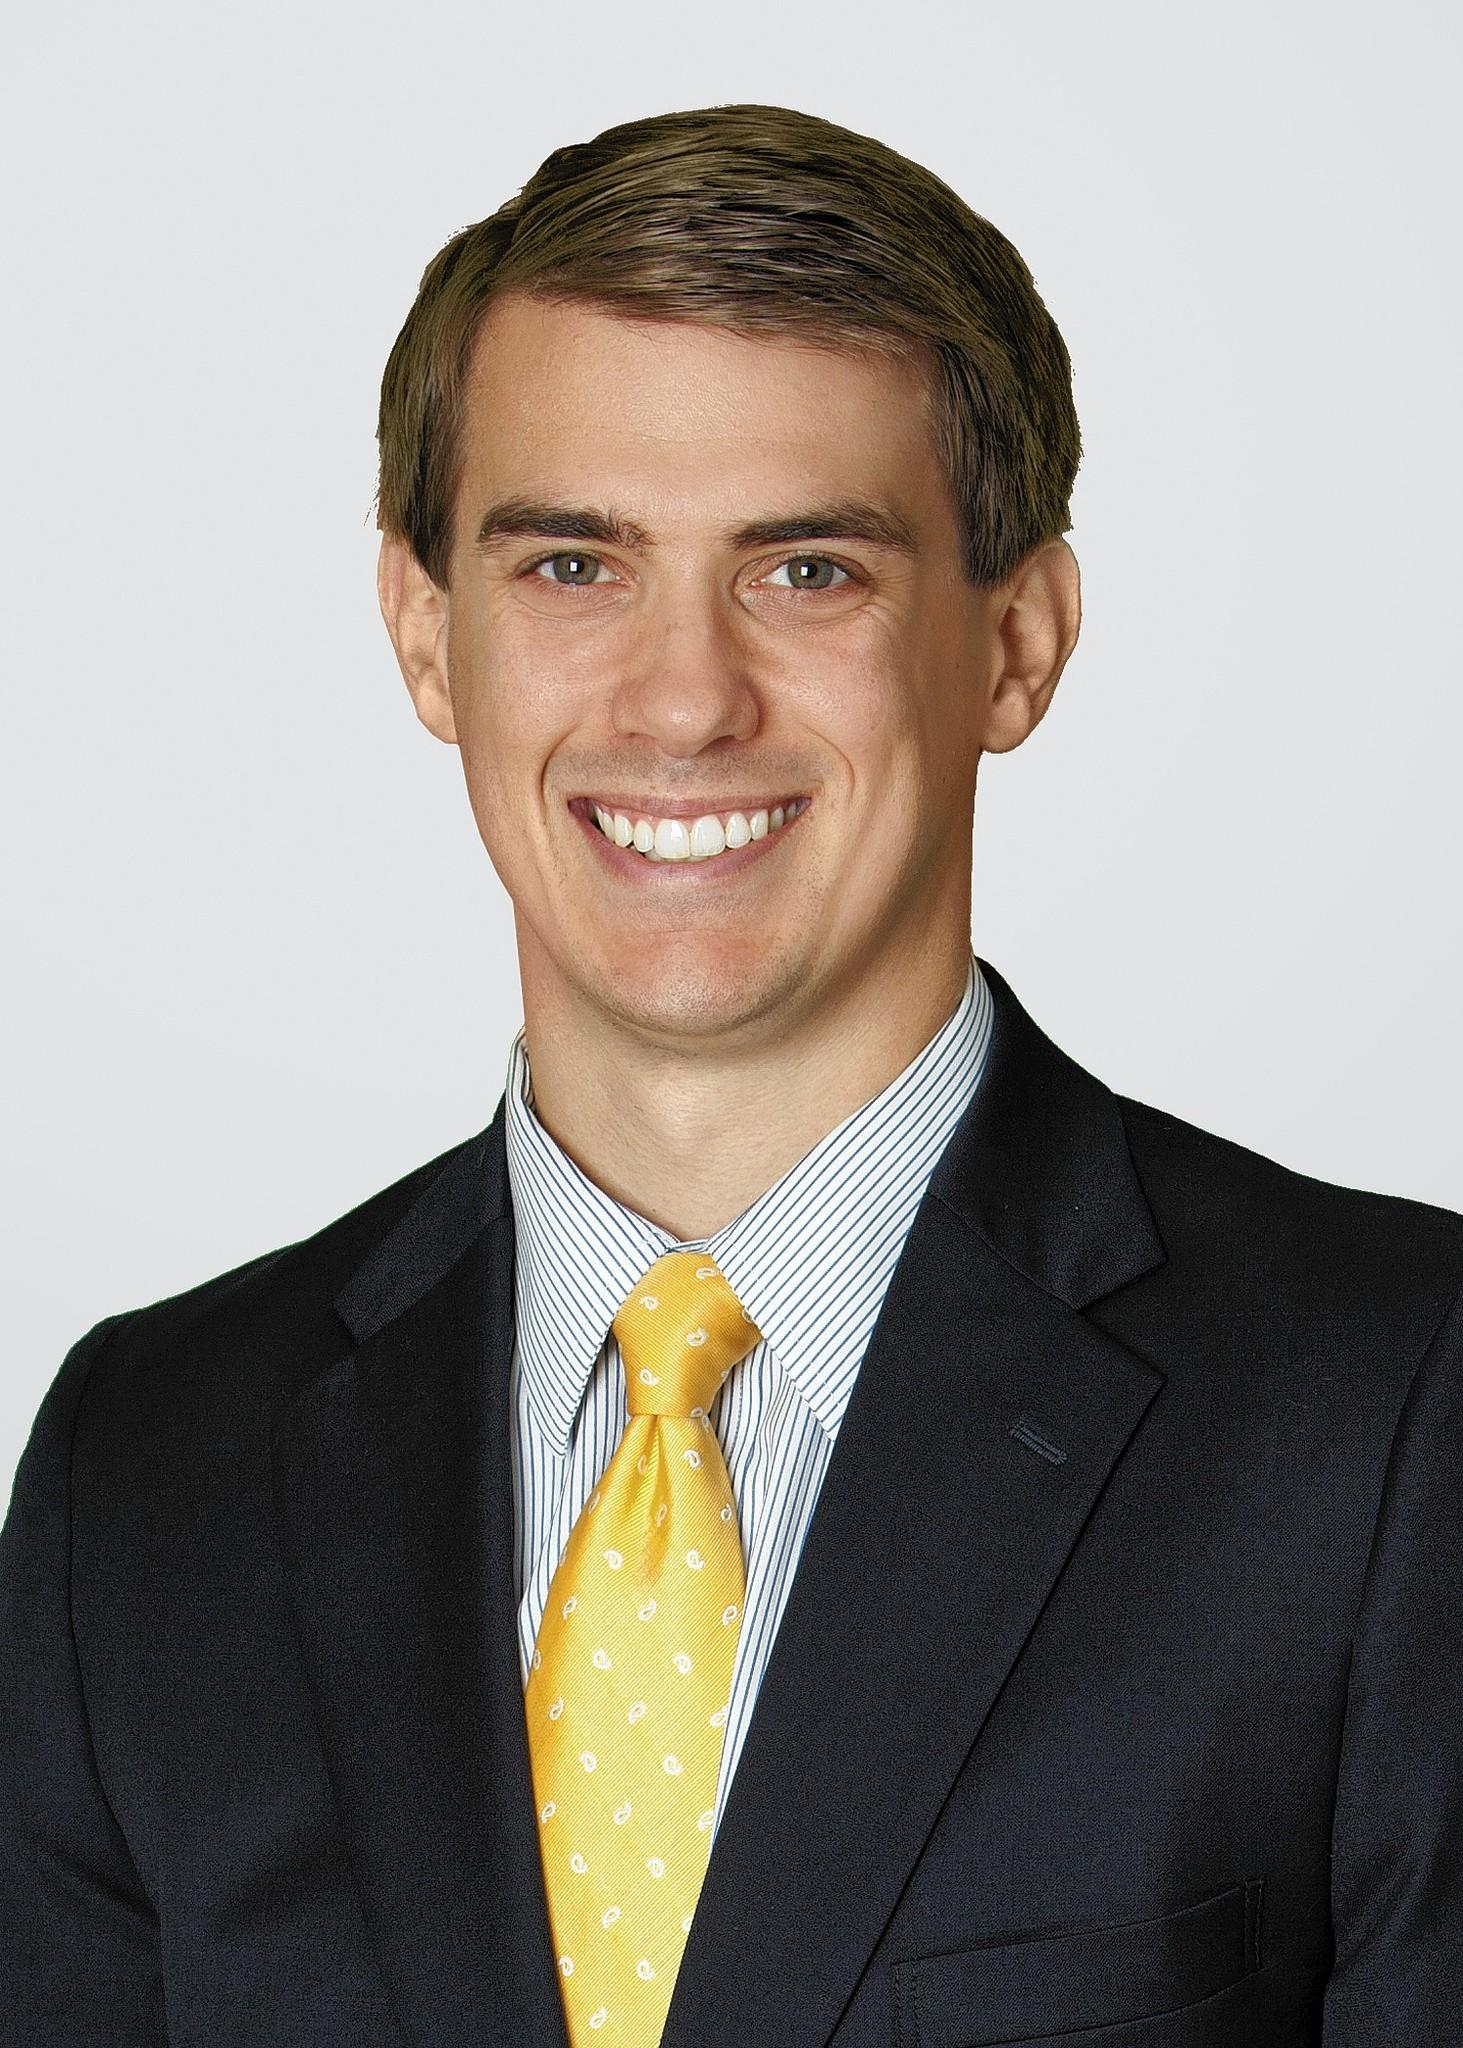 Austin D. Thacker has joined Holland & Knight as an associate in the firm's Orlando office.